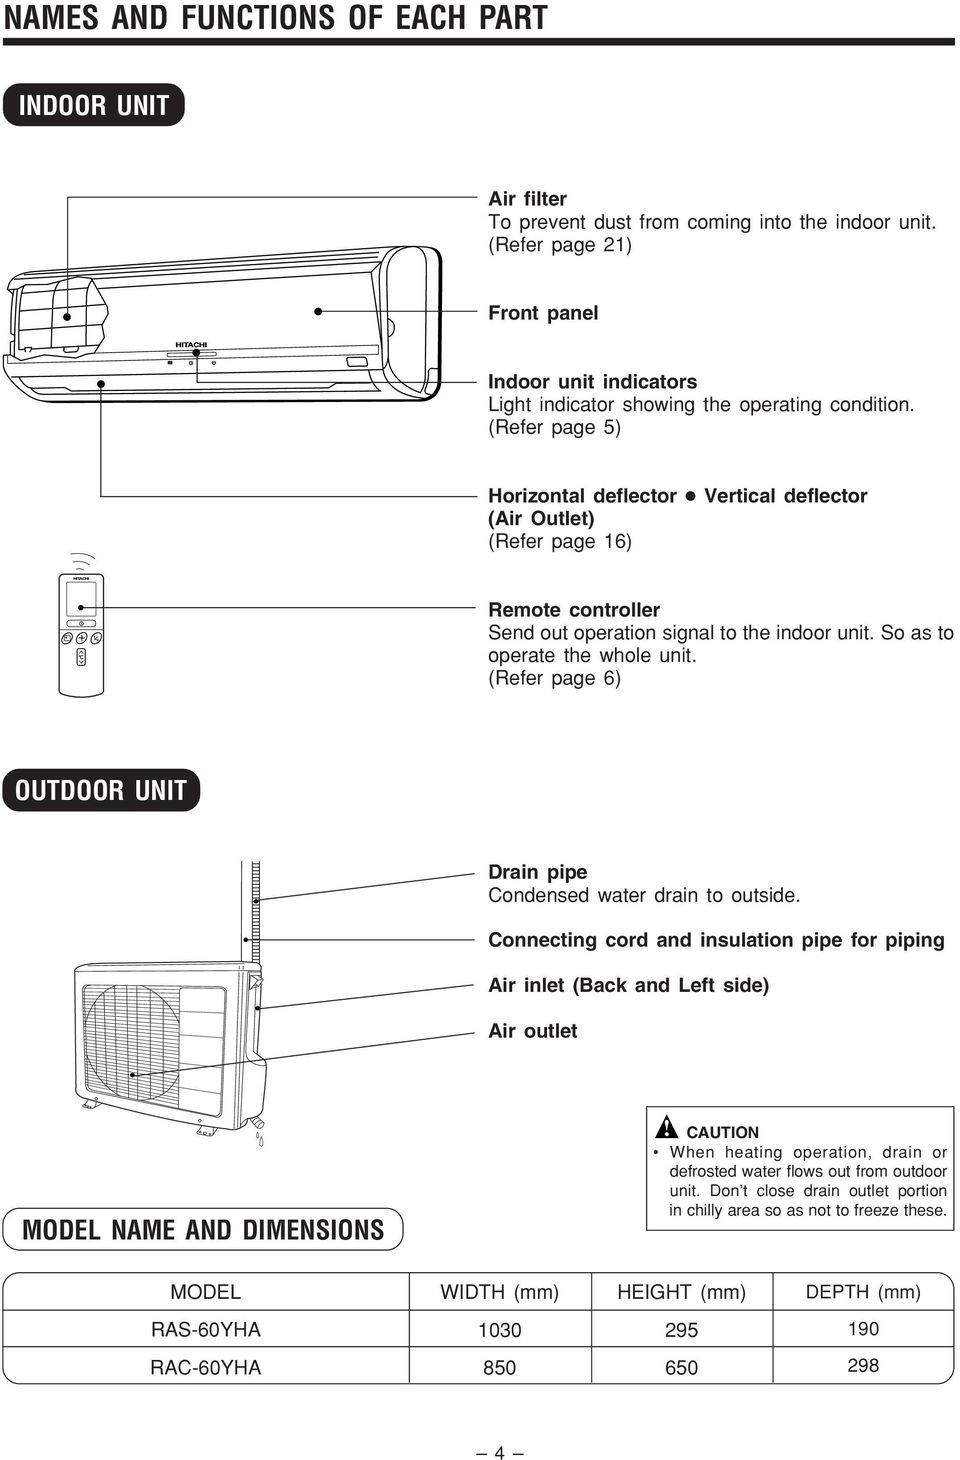 (Refer page 5) Horizontal deflector Vertical deflector (Air Outlet) (Refer page 16) Remote controller Send out operation signal to the indoor unit. So as to operate the whole unit.